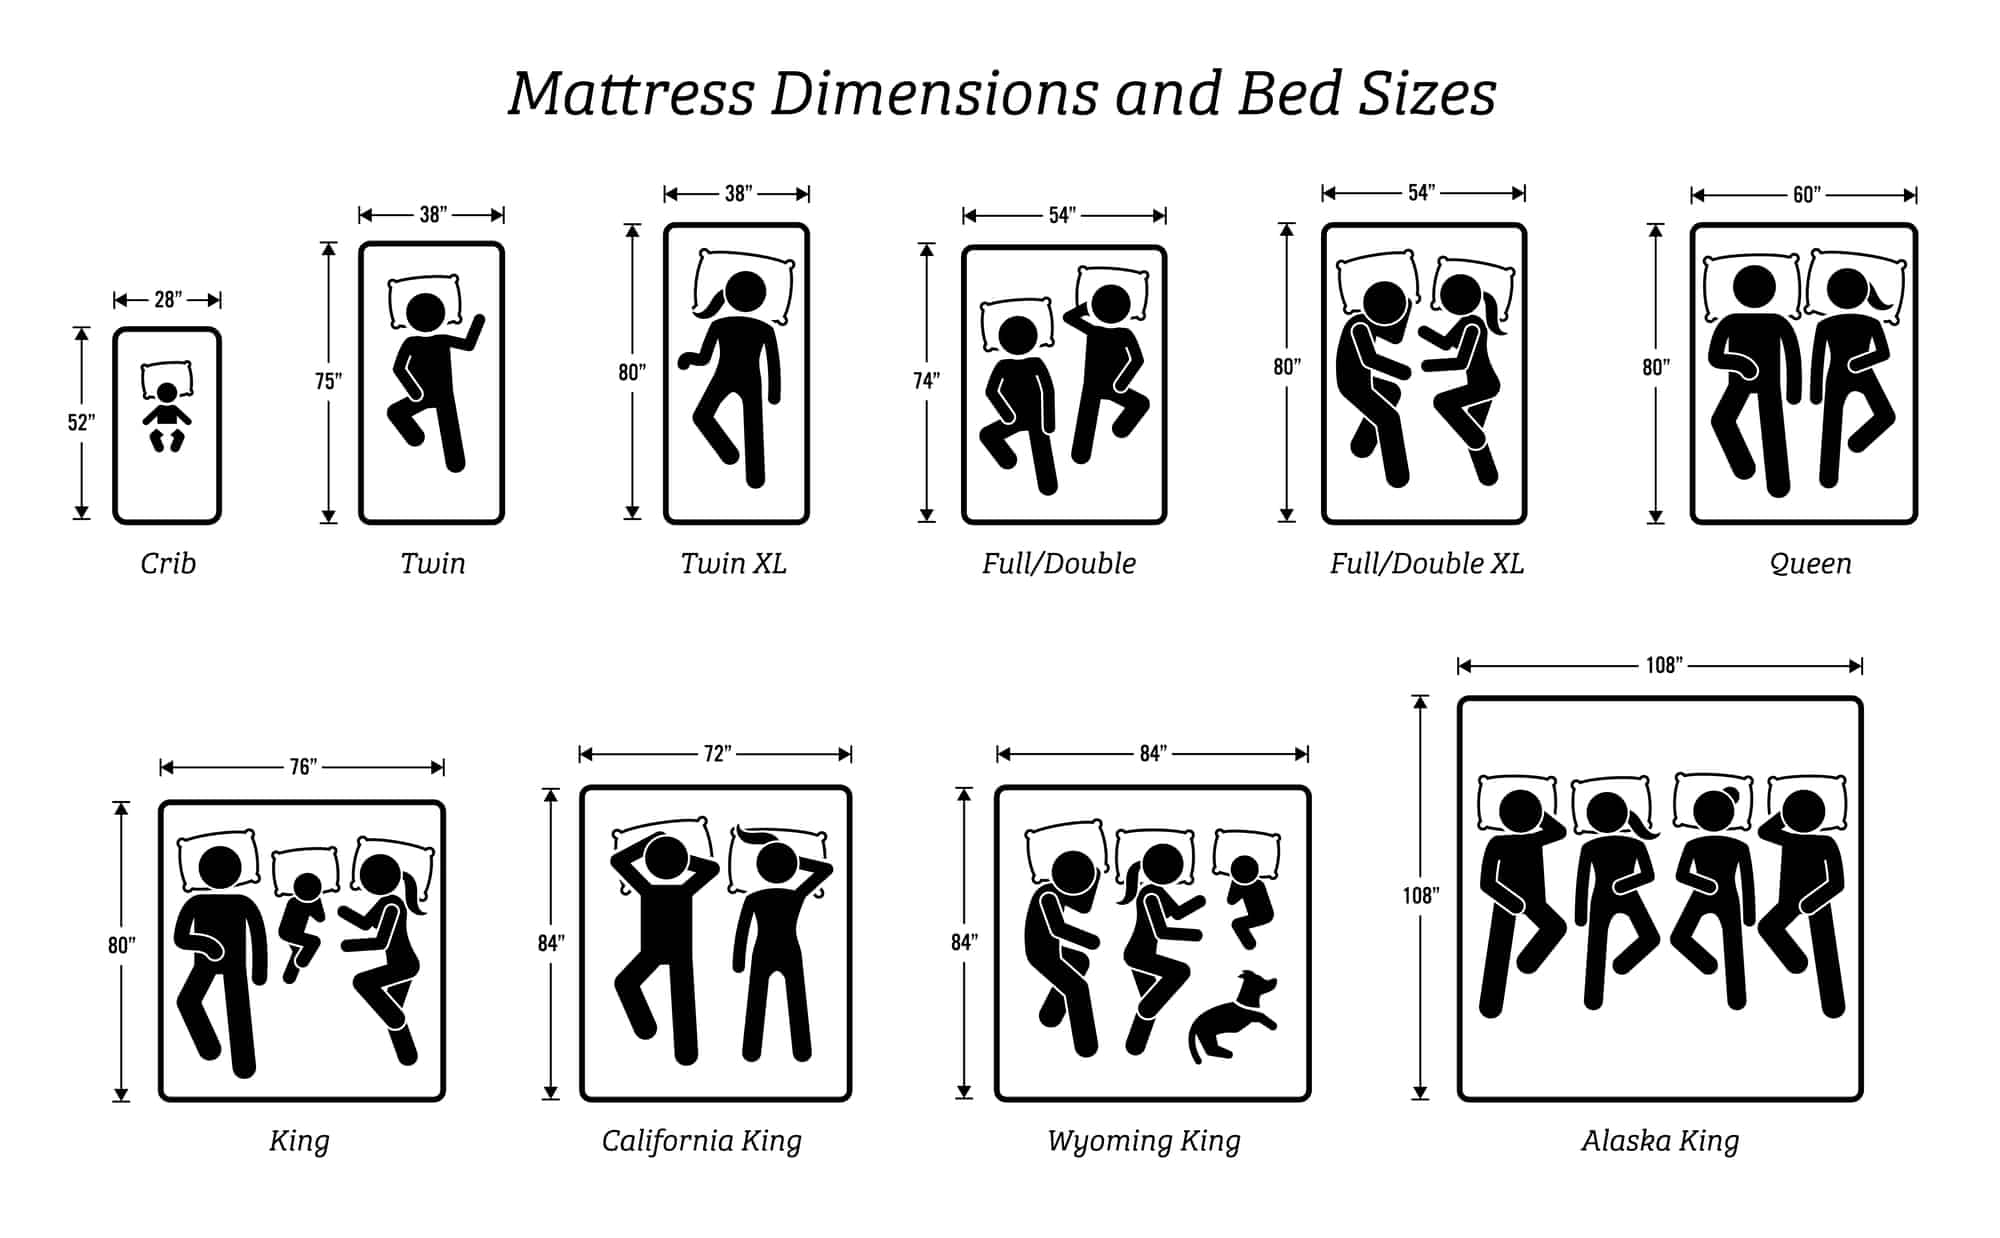 Mattress Sizes & Dimensions